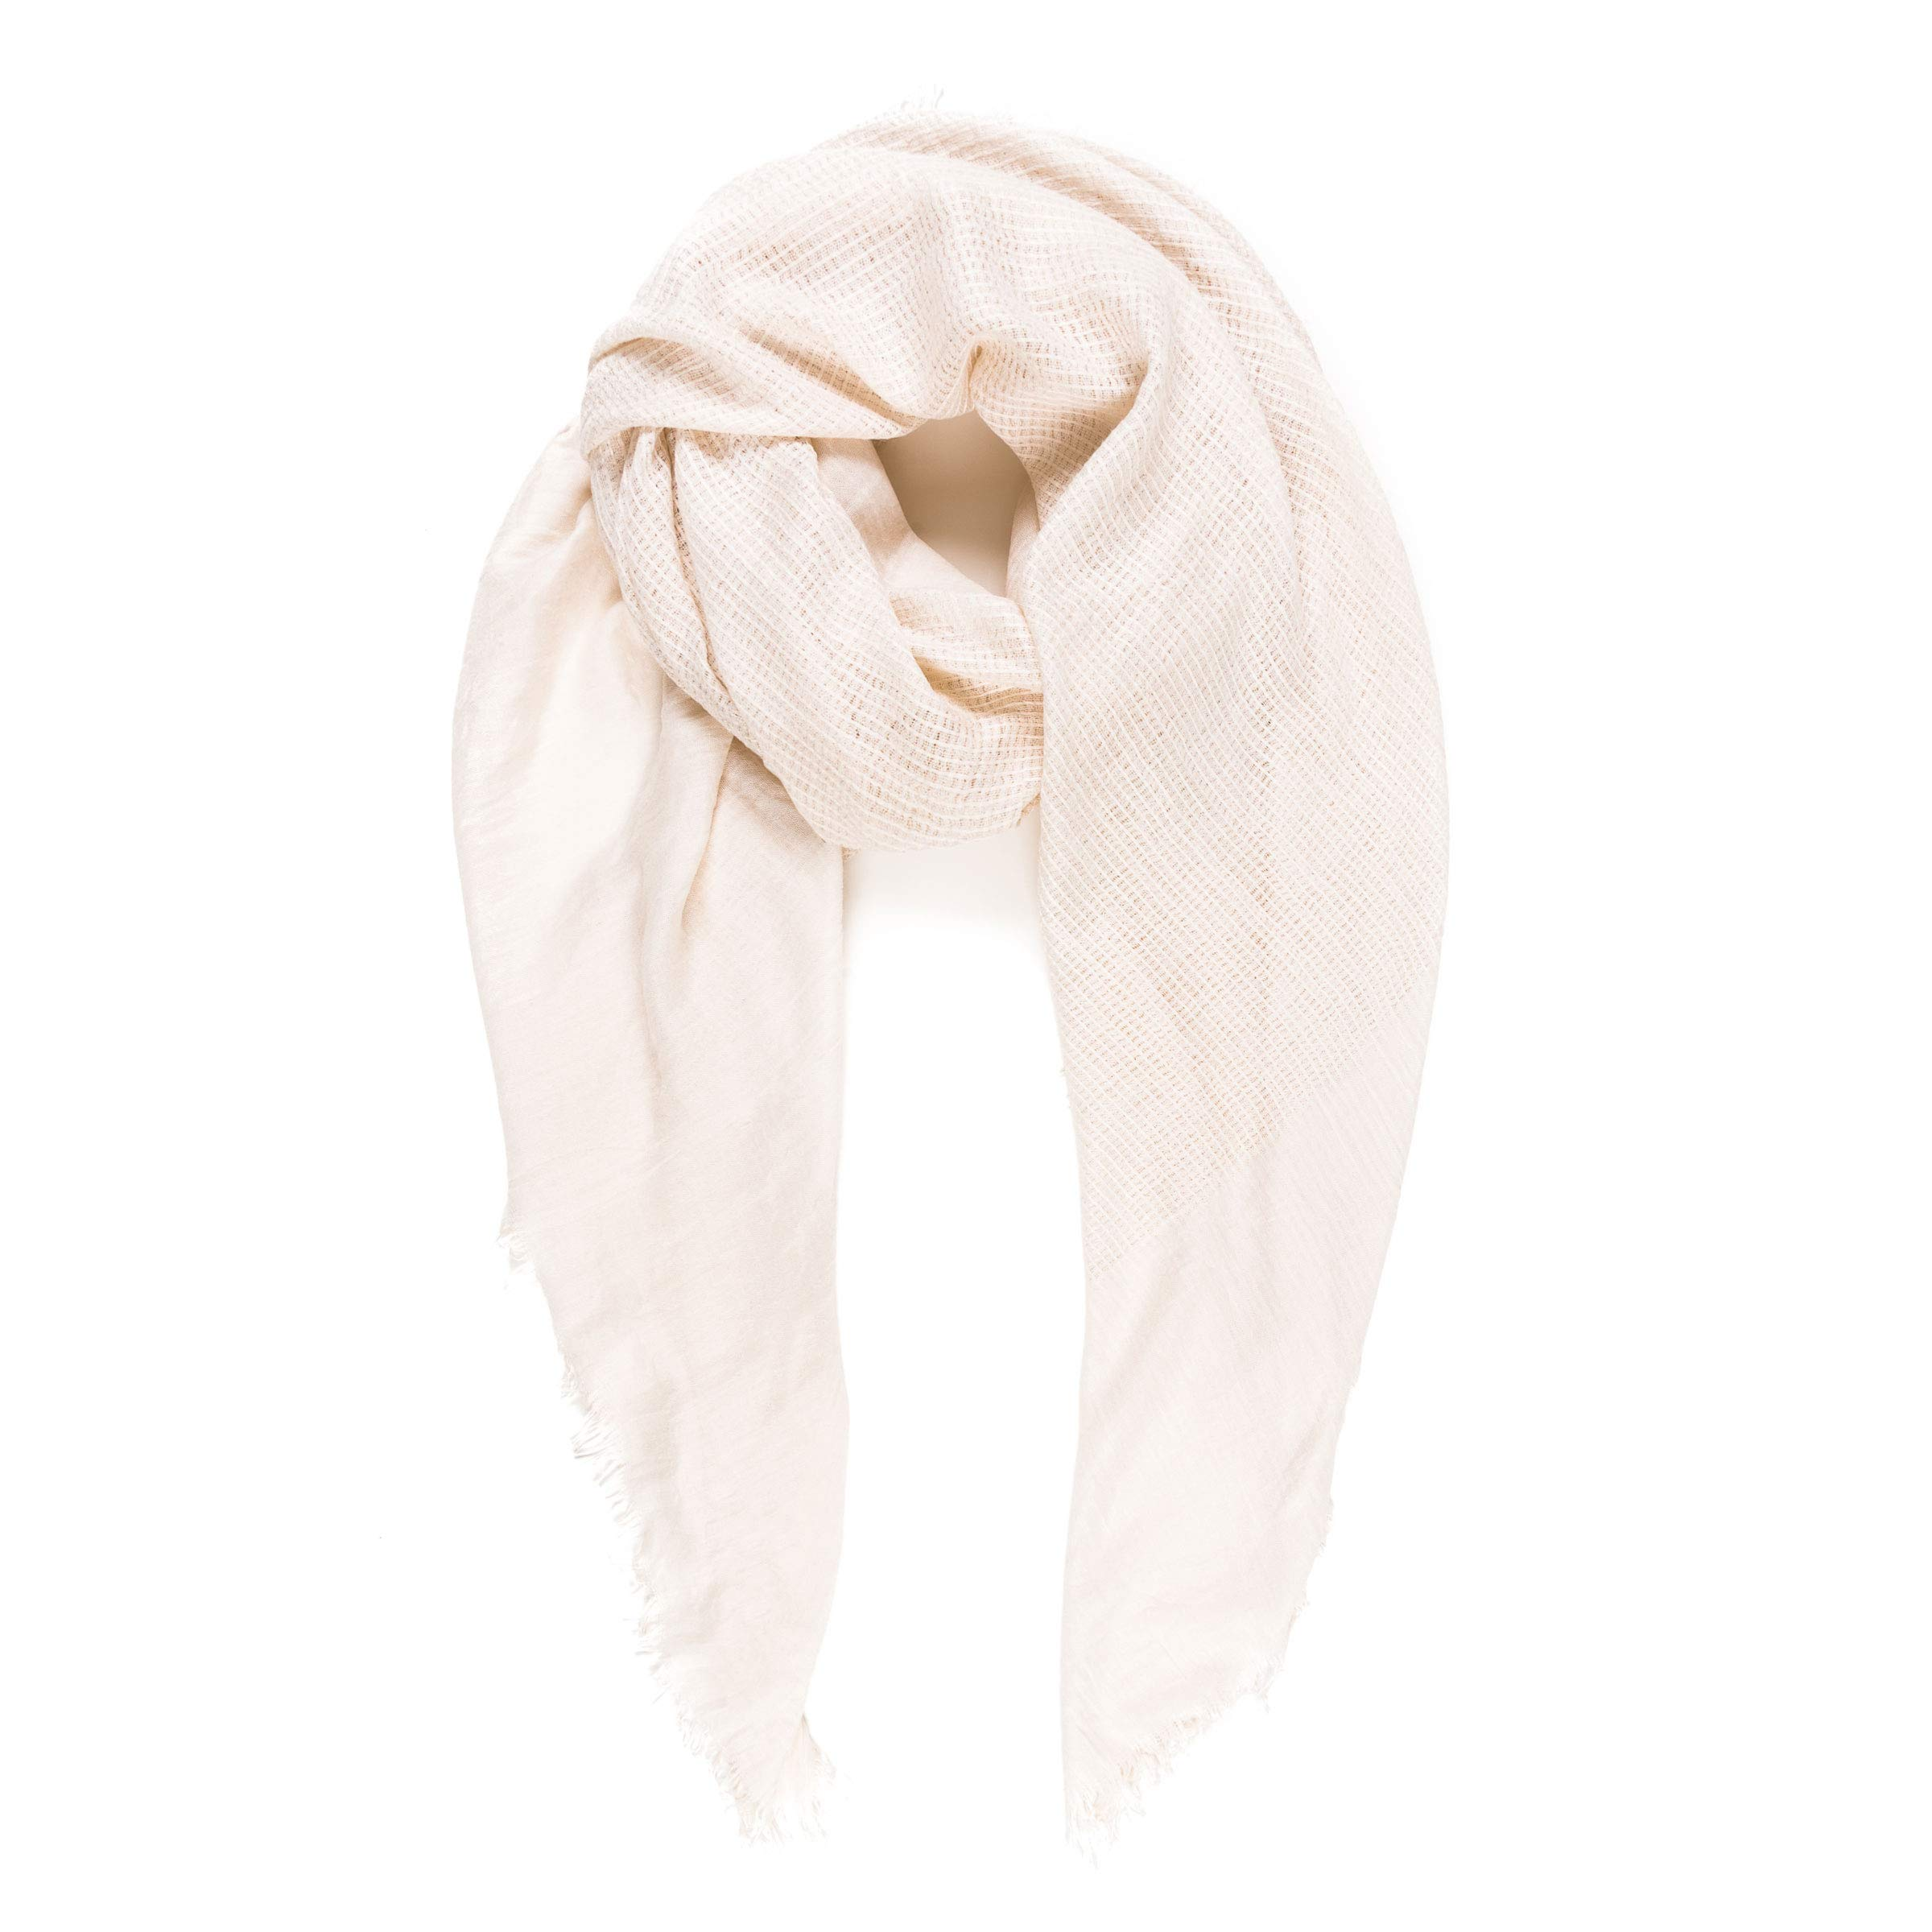 Scarves for Women: Lightweight Elegant Solid colors Fashion Scarf by MIMOSITO (Waffle Textured, Creamy White)